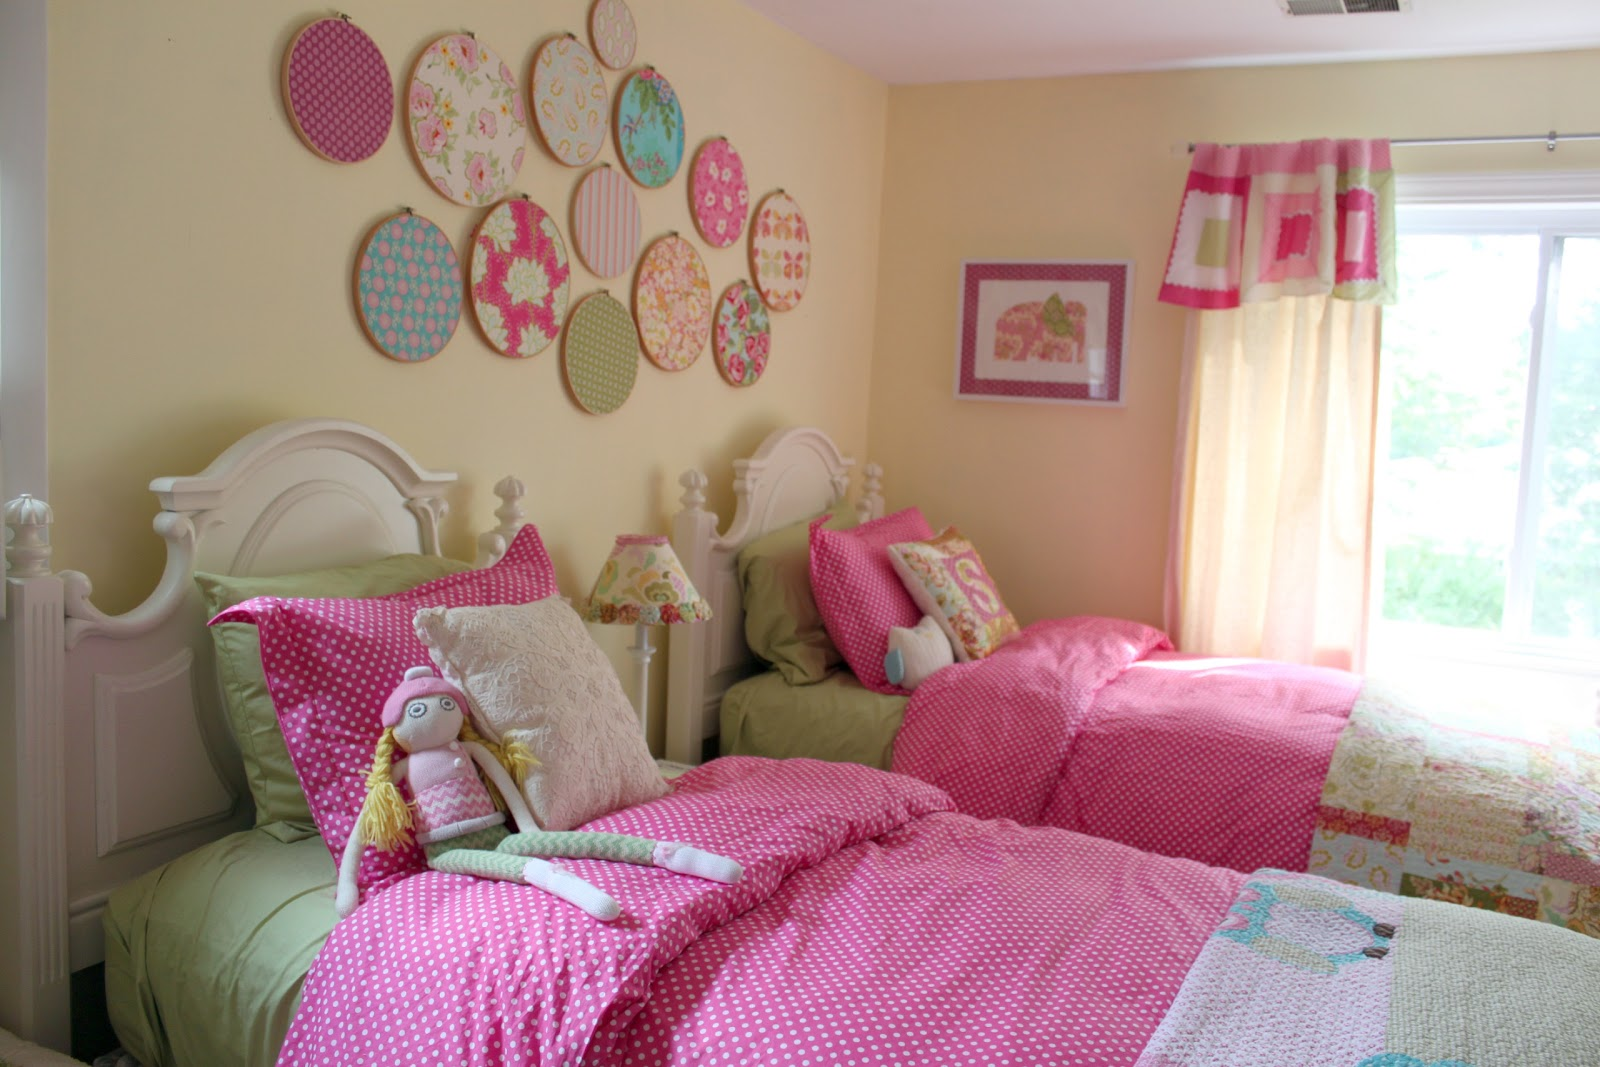 Decorating girls shared toddler bedroom the cottage mama - How to decorate a girl room ...